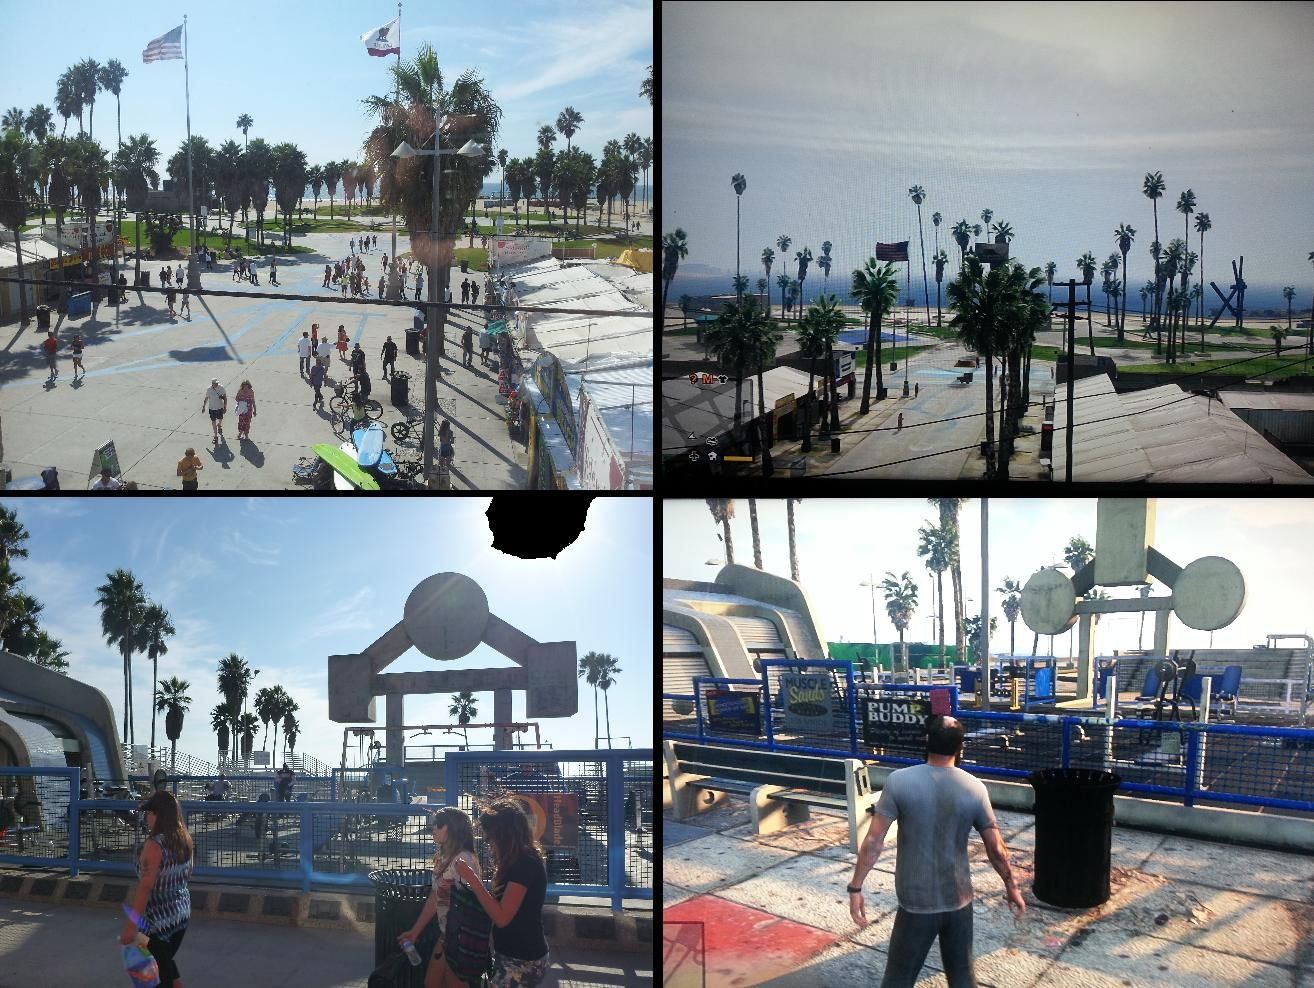 Pictures from my holiday to venice beach last year compared